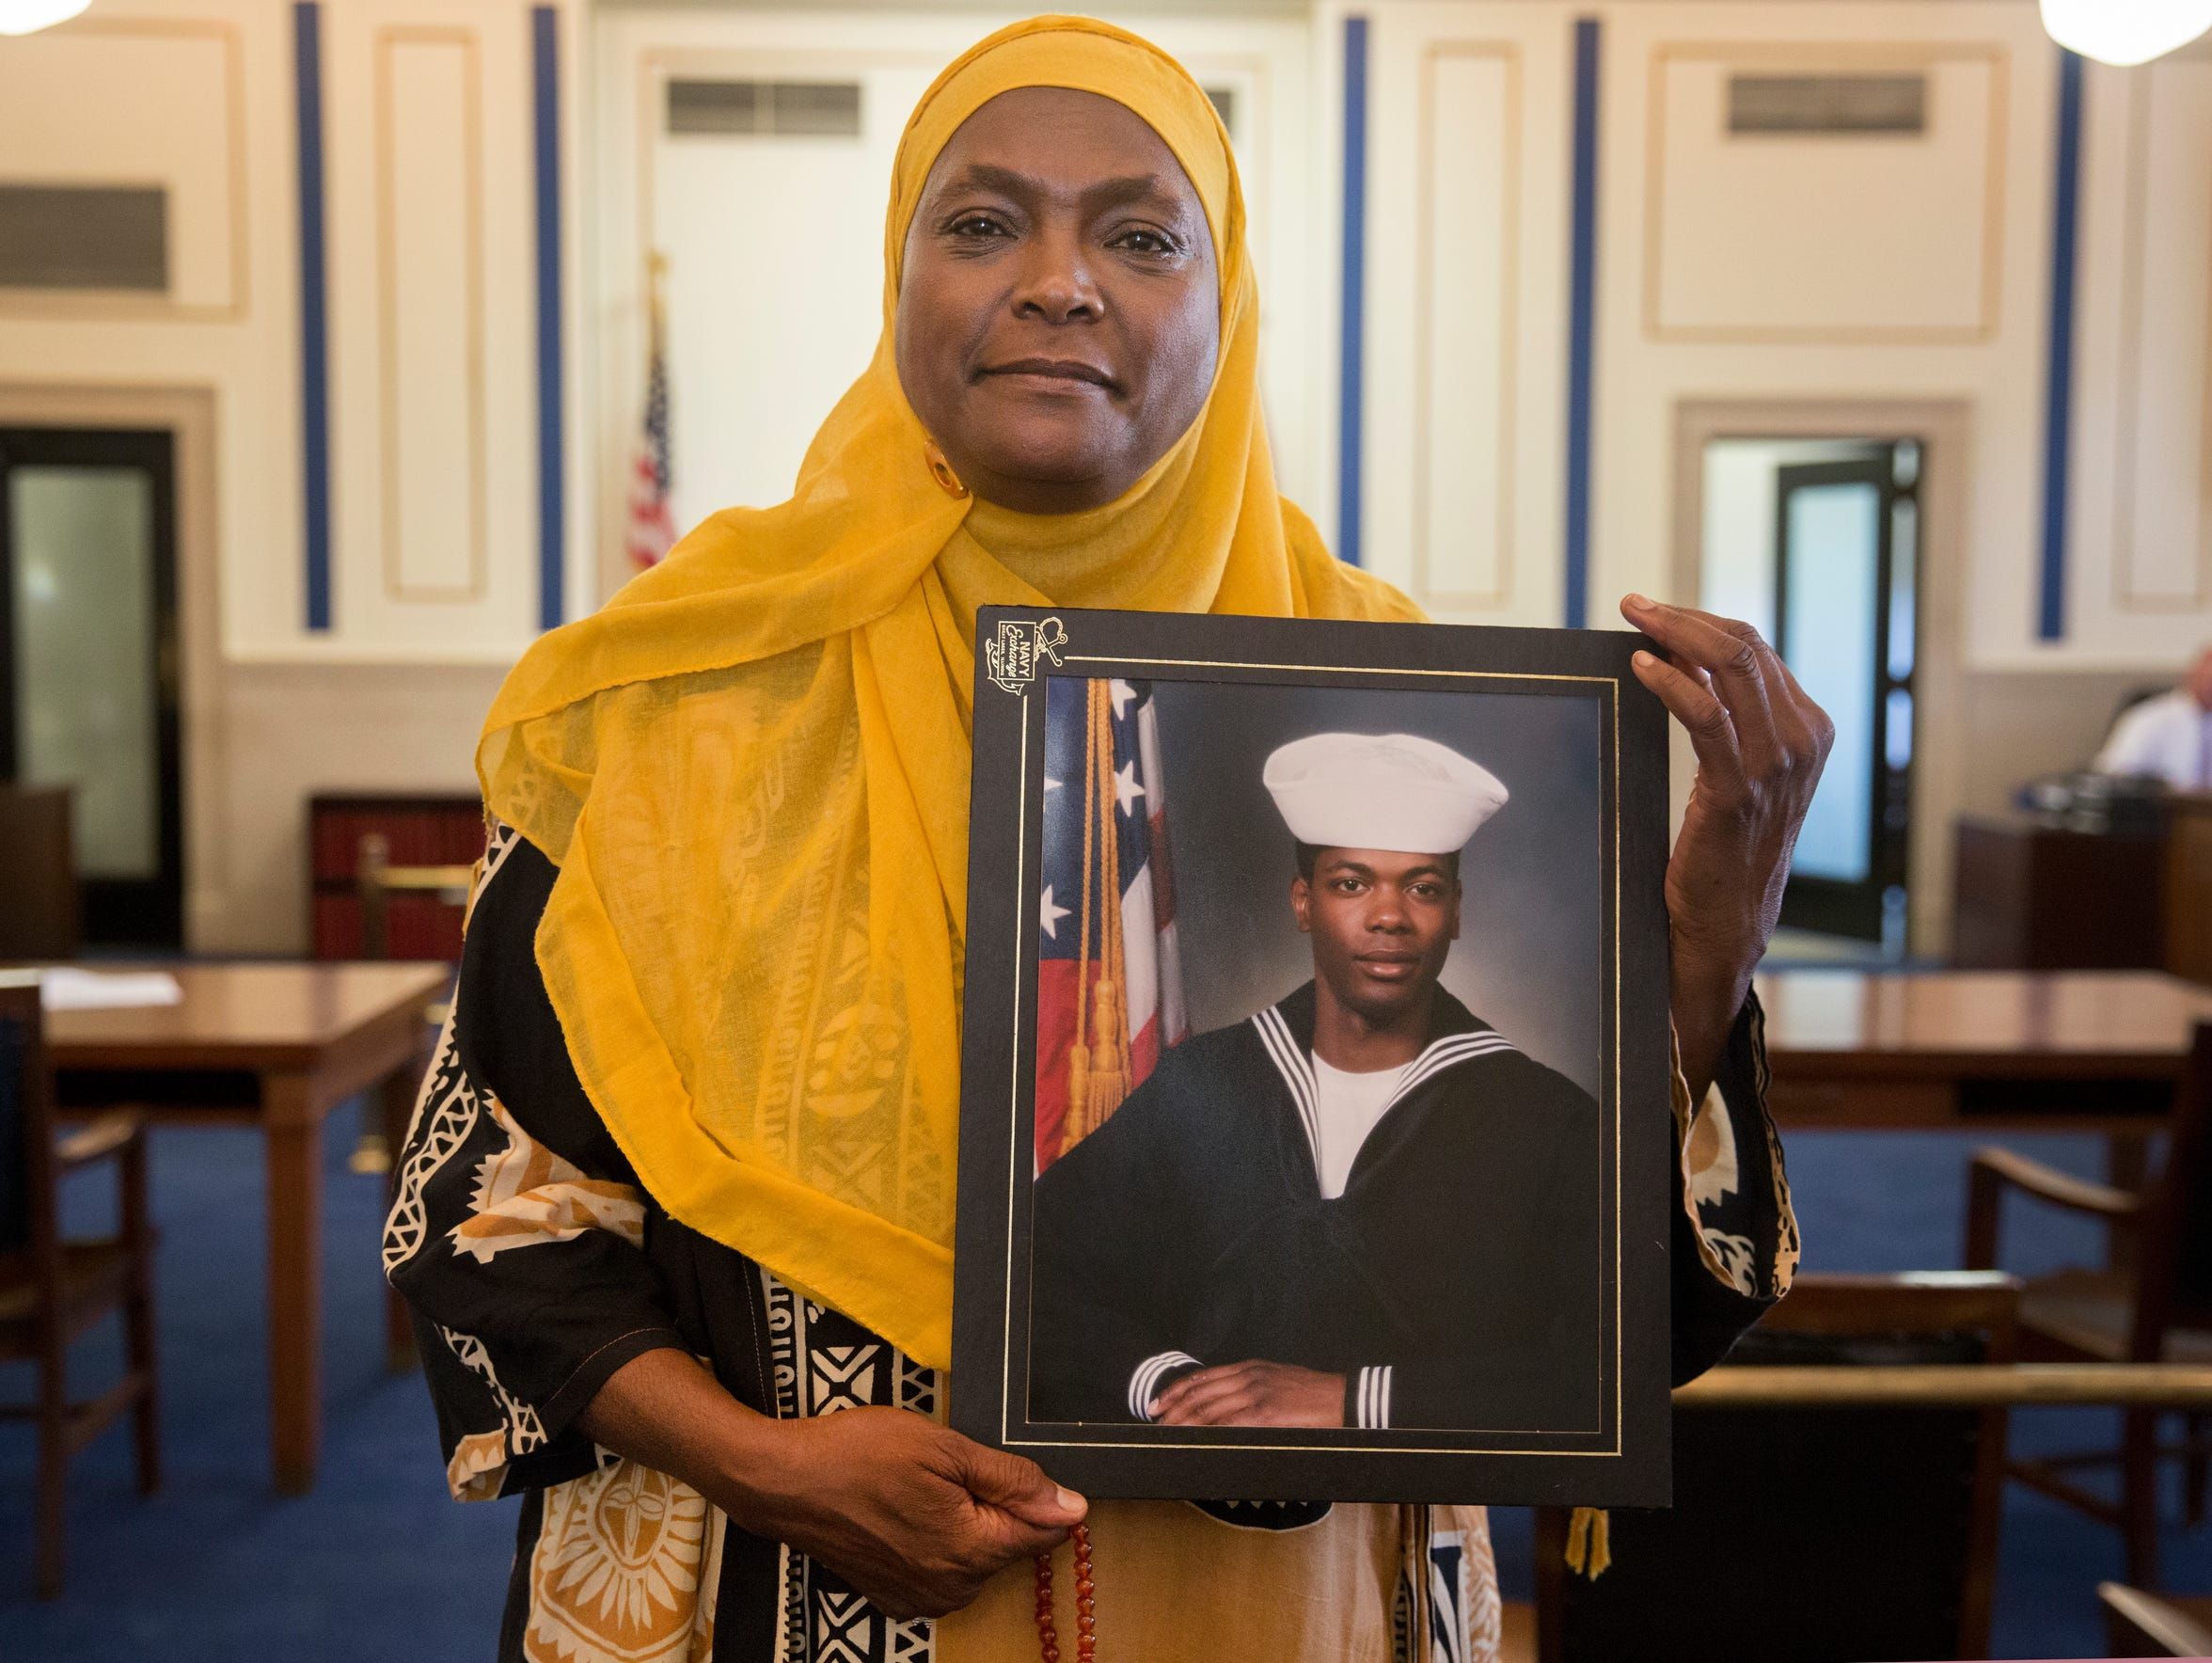 Rukiye Abdul-Mutakallim holds a photo of her son, Suliman Ahmed Abdul-Mutakallim. He's a Navy veteran and served in the Iraq War.